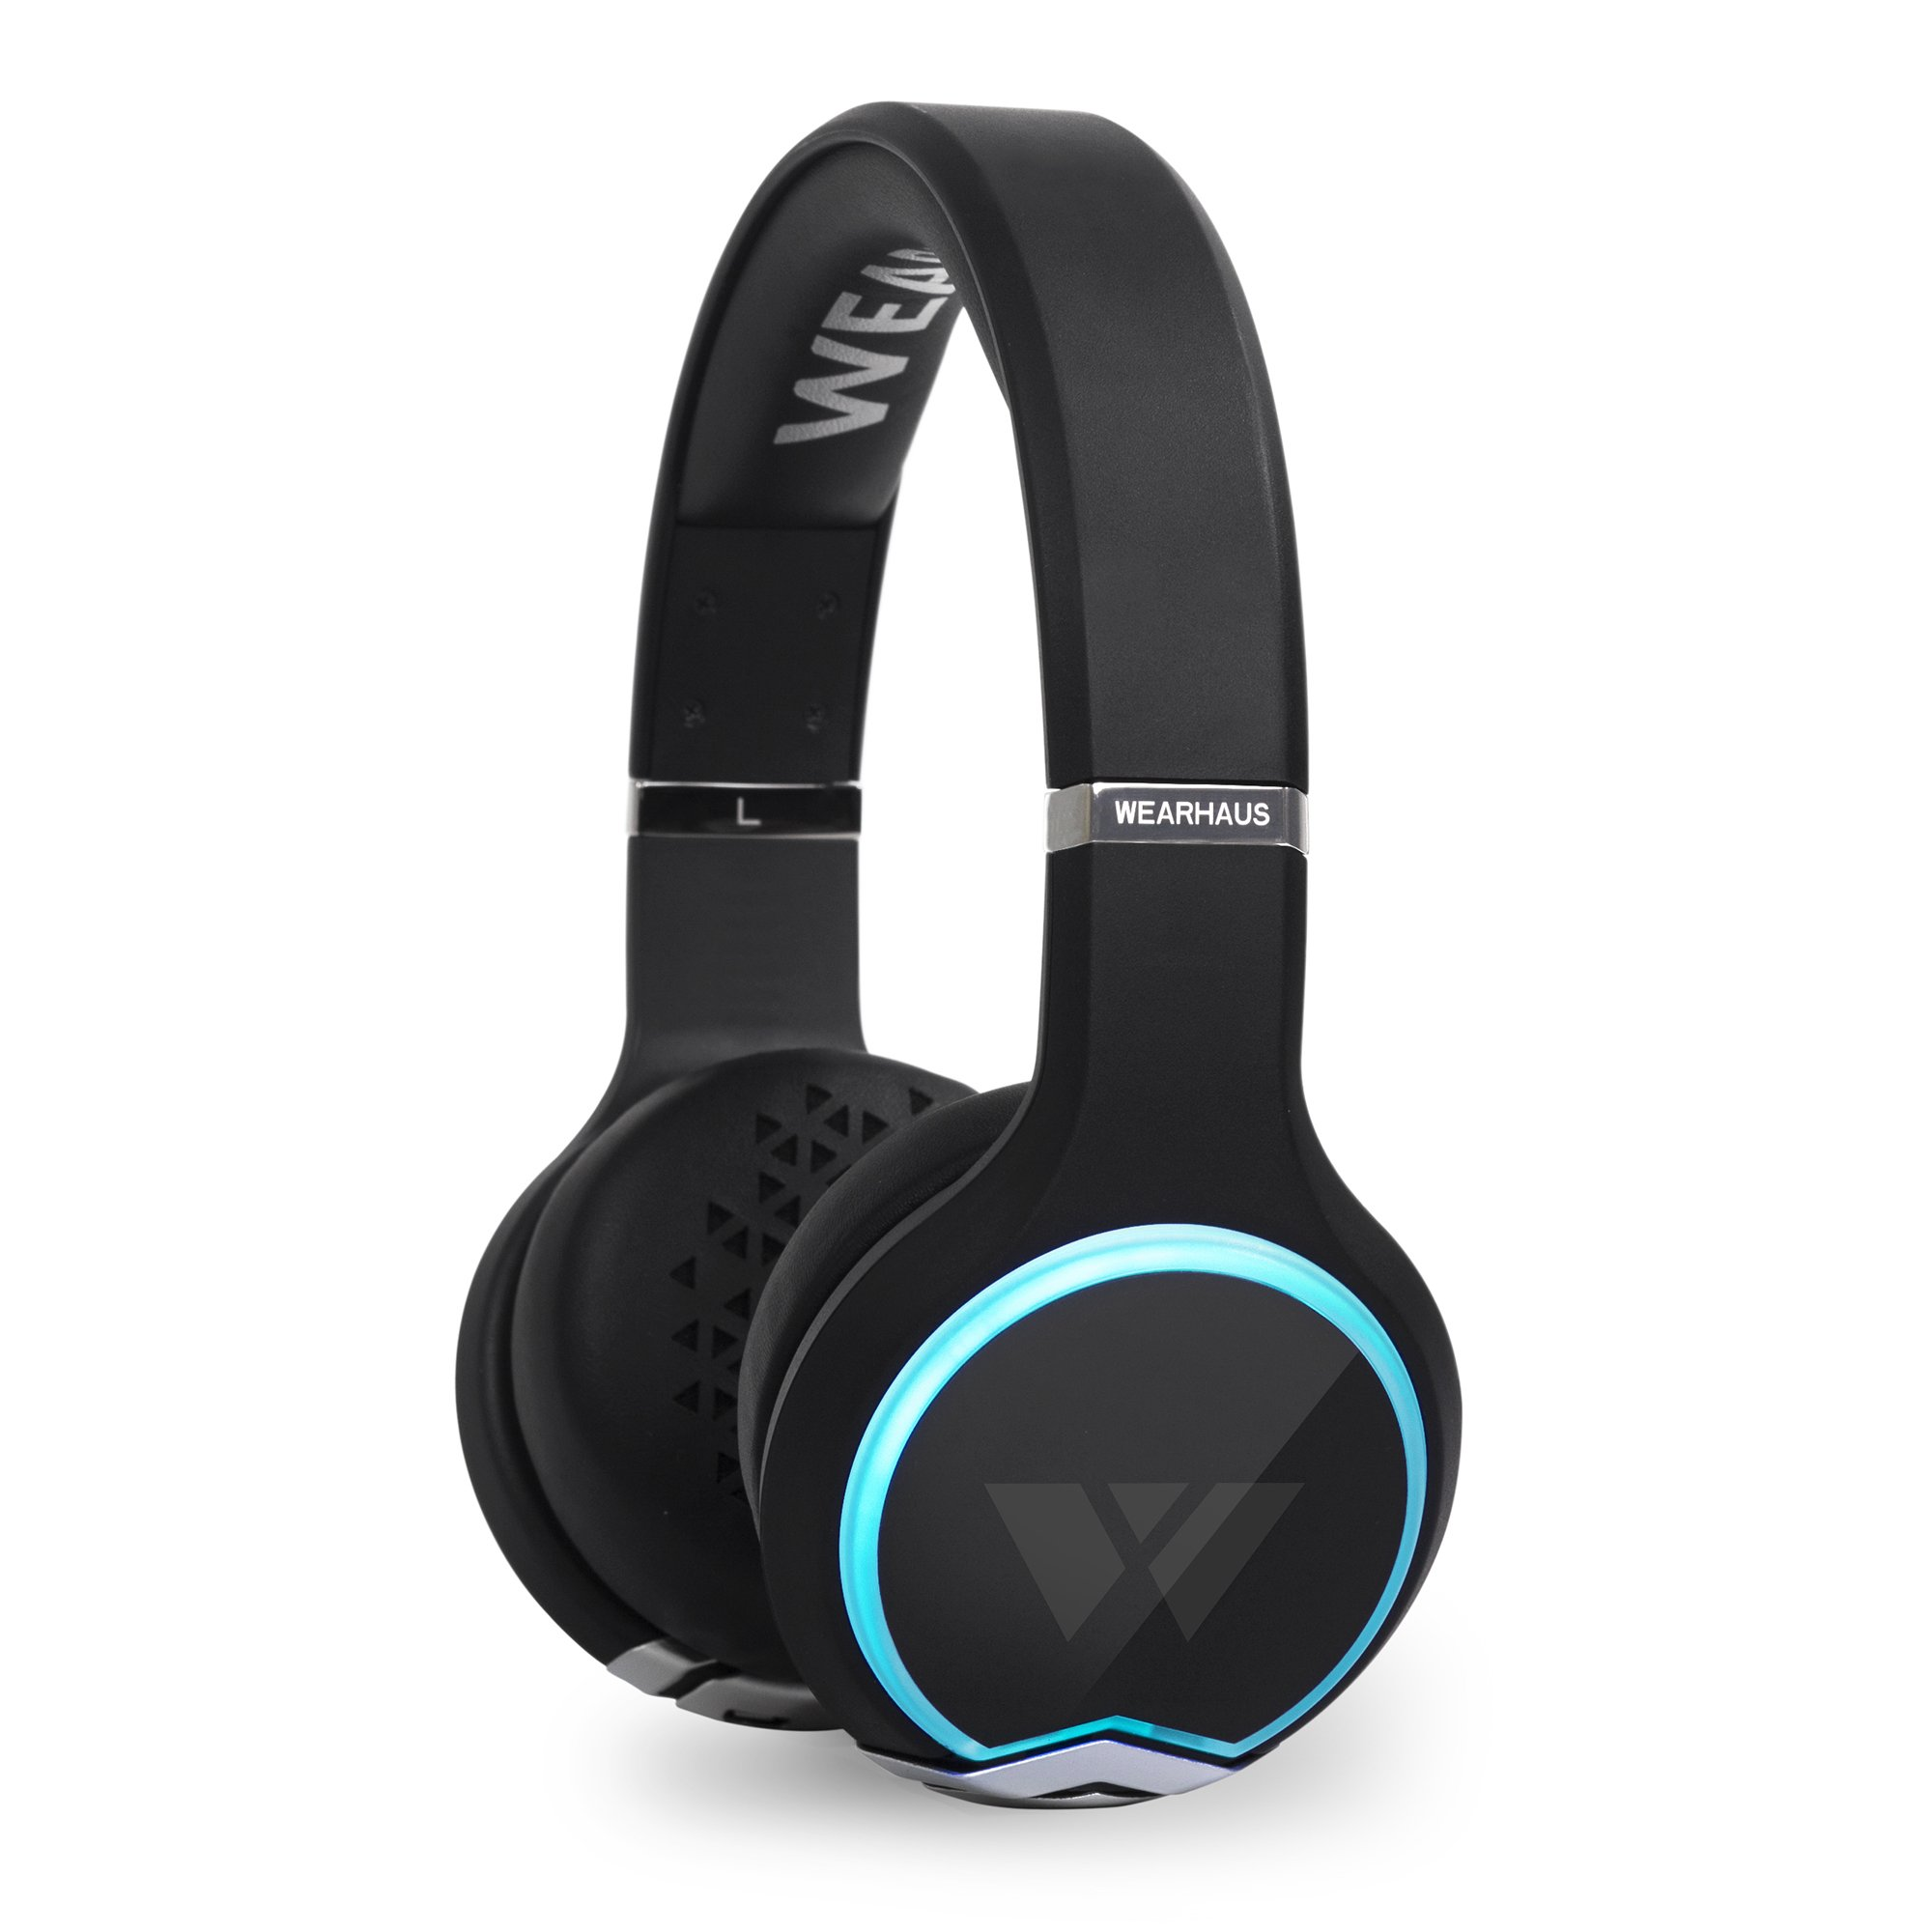 Wearhaus Arc On-Ear Bluetooth Headphones with Wireless Music Sharing, Customizable Color Ring, Touch Controls, Spotify Apple Music Integrated iPhone Android App - Black